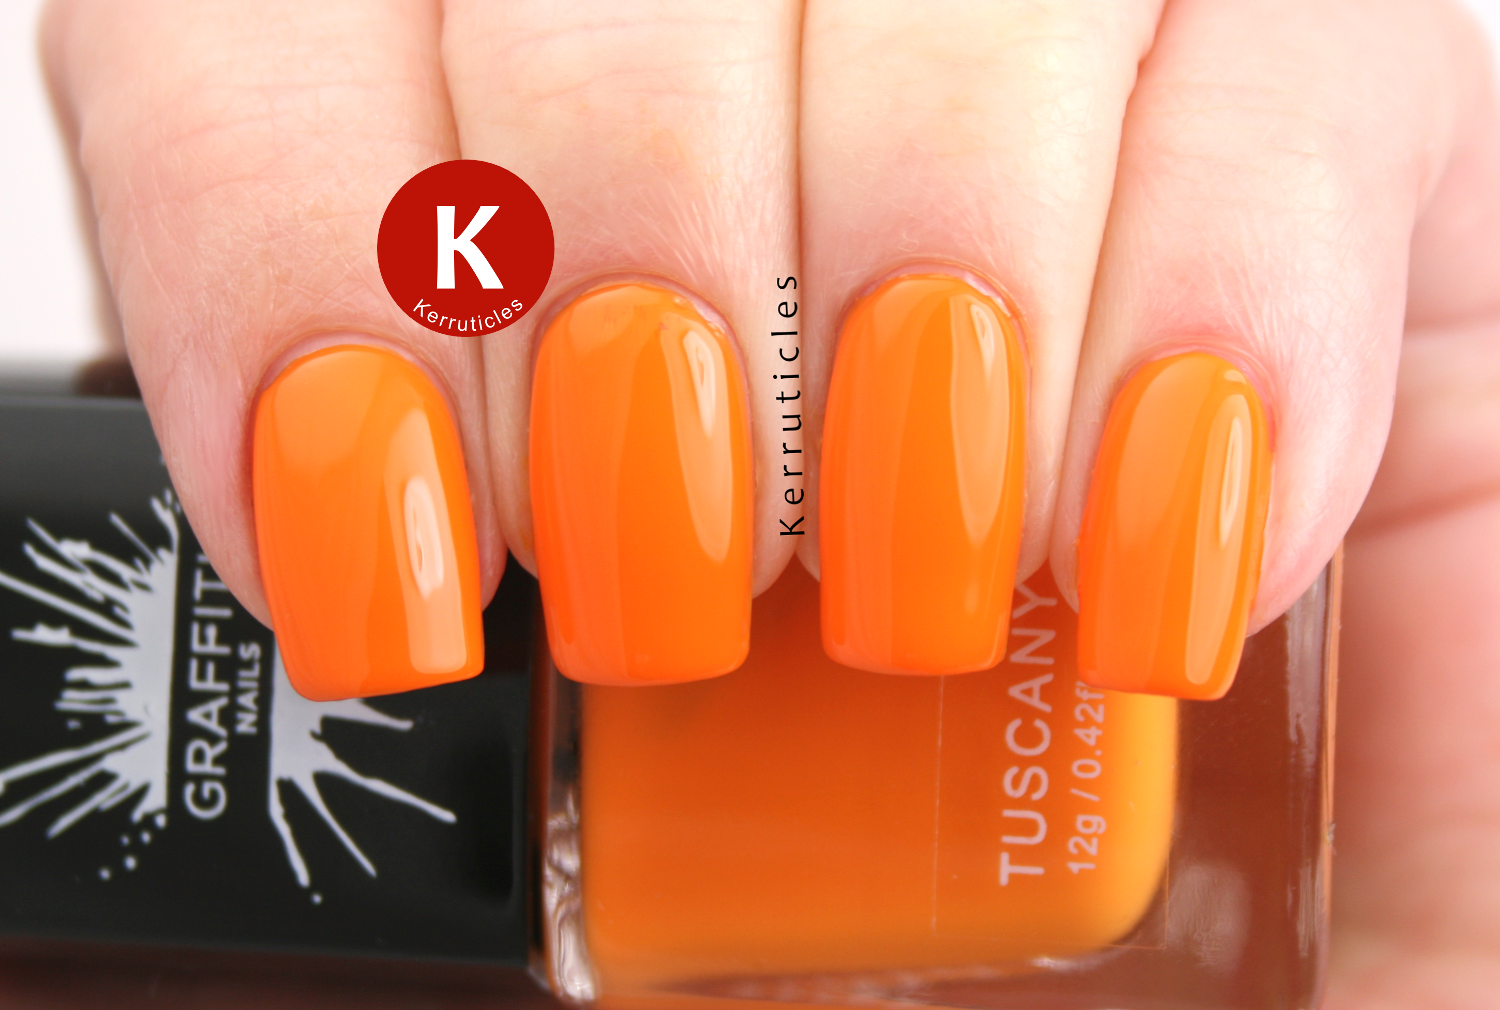 Graffiti Nails Tuscany orange polish